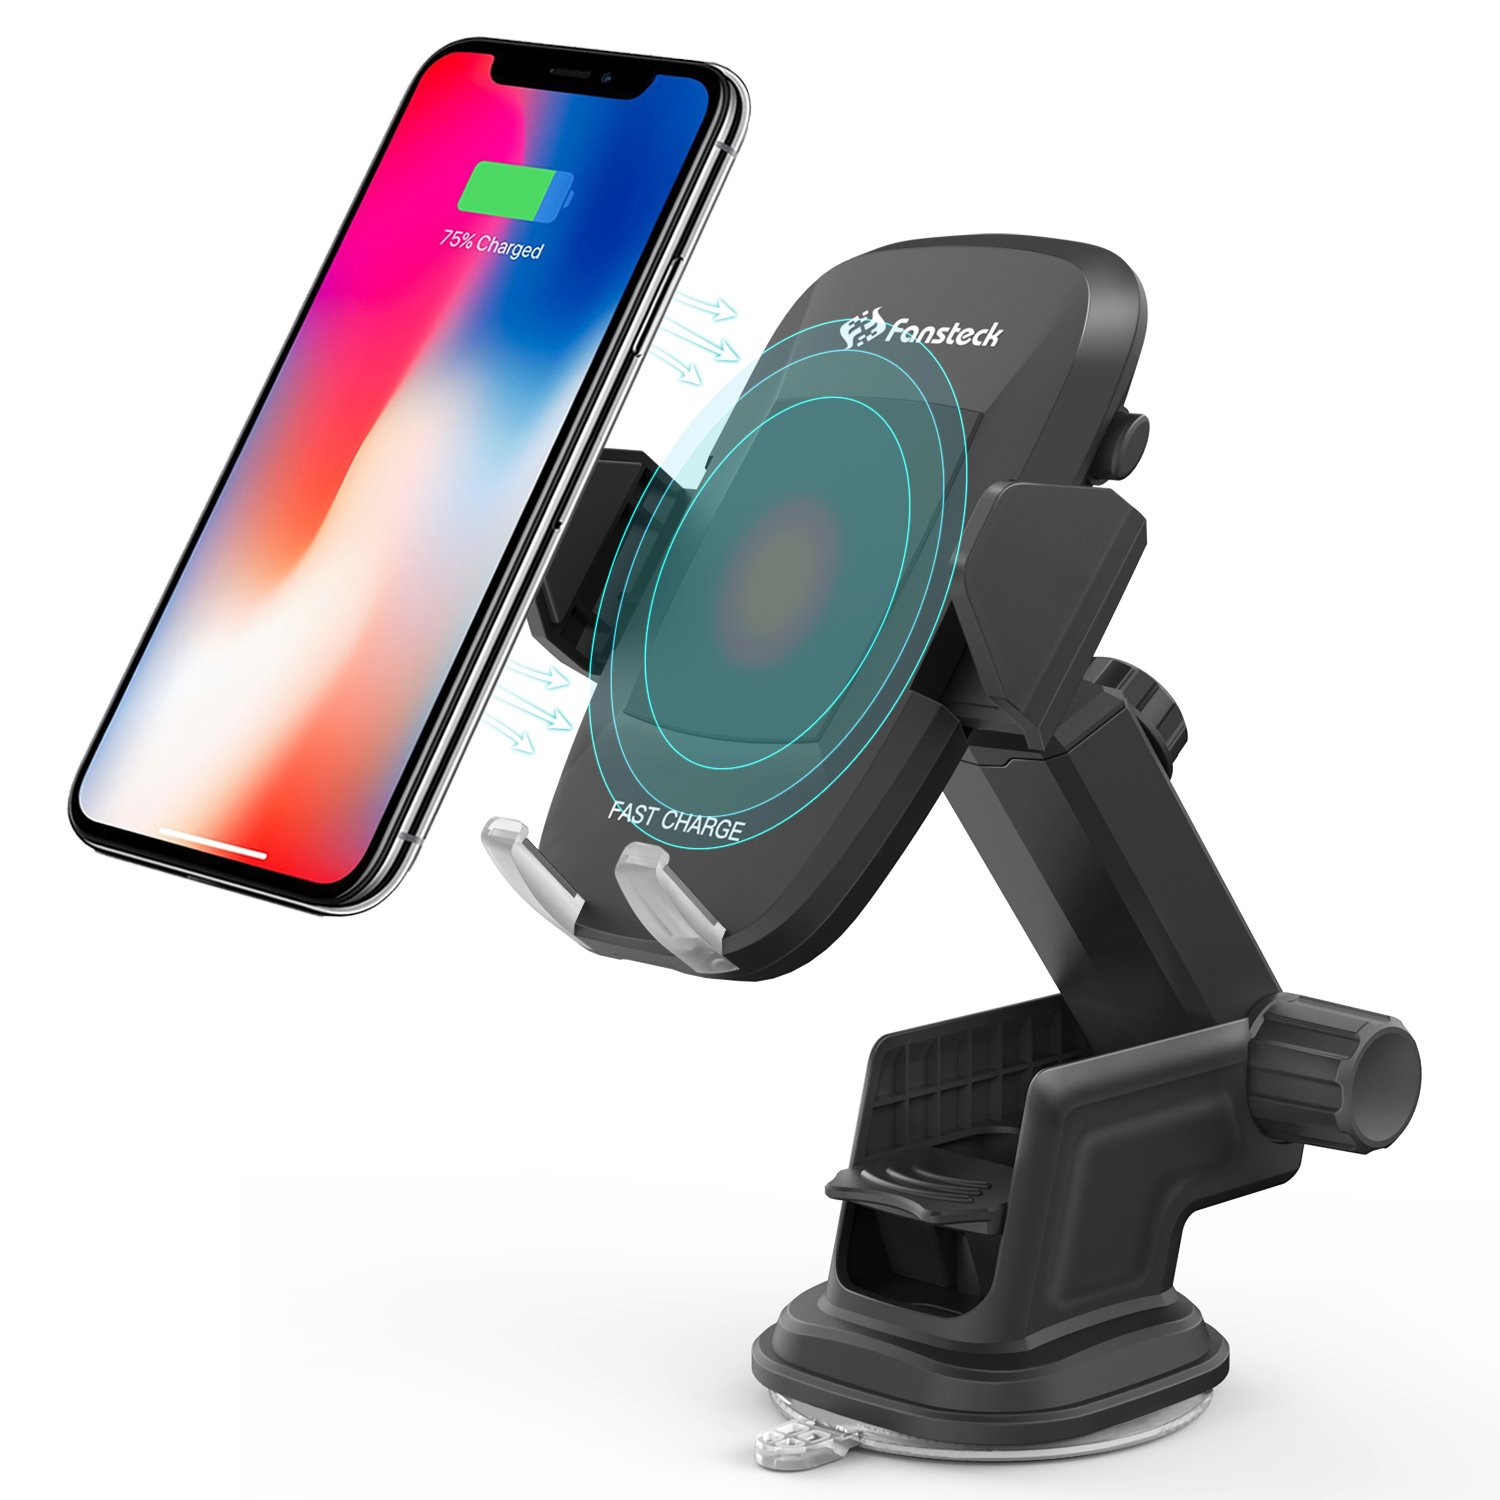 Wireless Car Charger, Fansteck Car Mount Charger with Fast Charger, Phone Holder with Multiple Installation for iPhone X/iPhone 8/8 plus, Samsung Galaxy S9/S9 Plus/Note 8 and other QI Enabled Phones